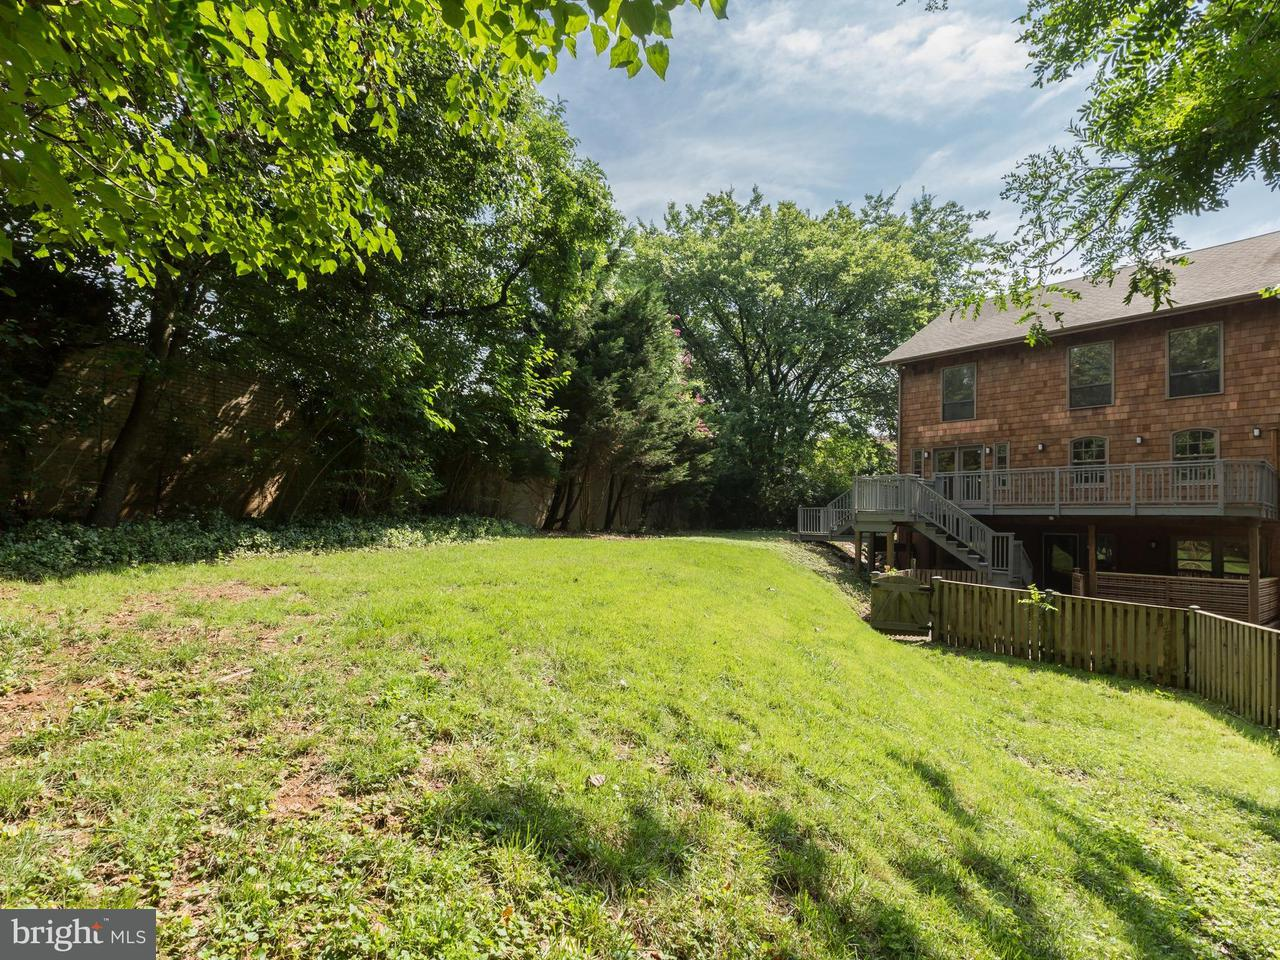 Additional photo for property listing at 3310 Idaho Ave NW  Washington, District Of Columbia 20016 United States